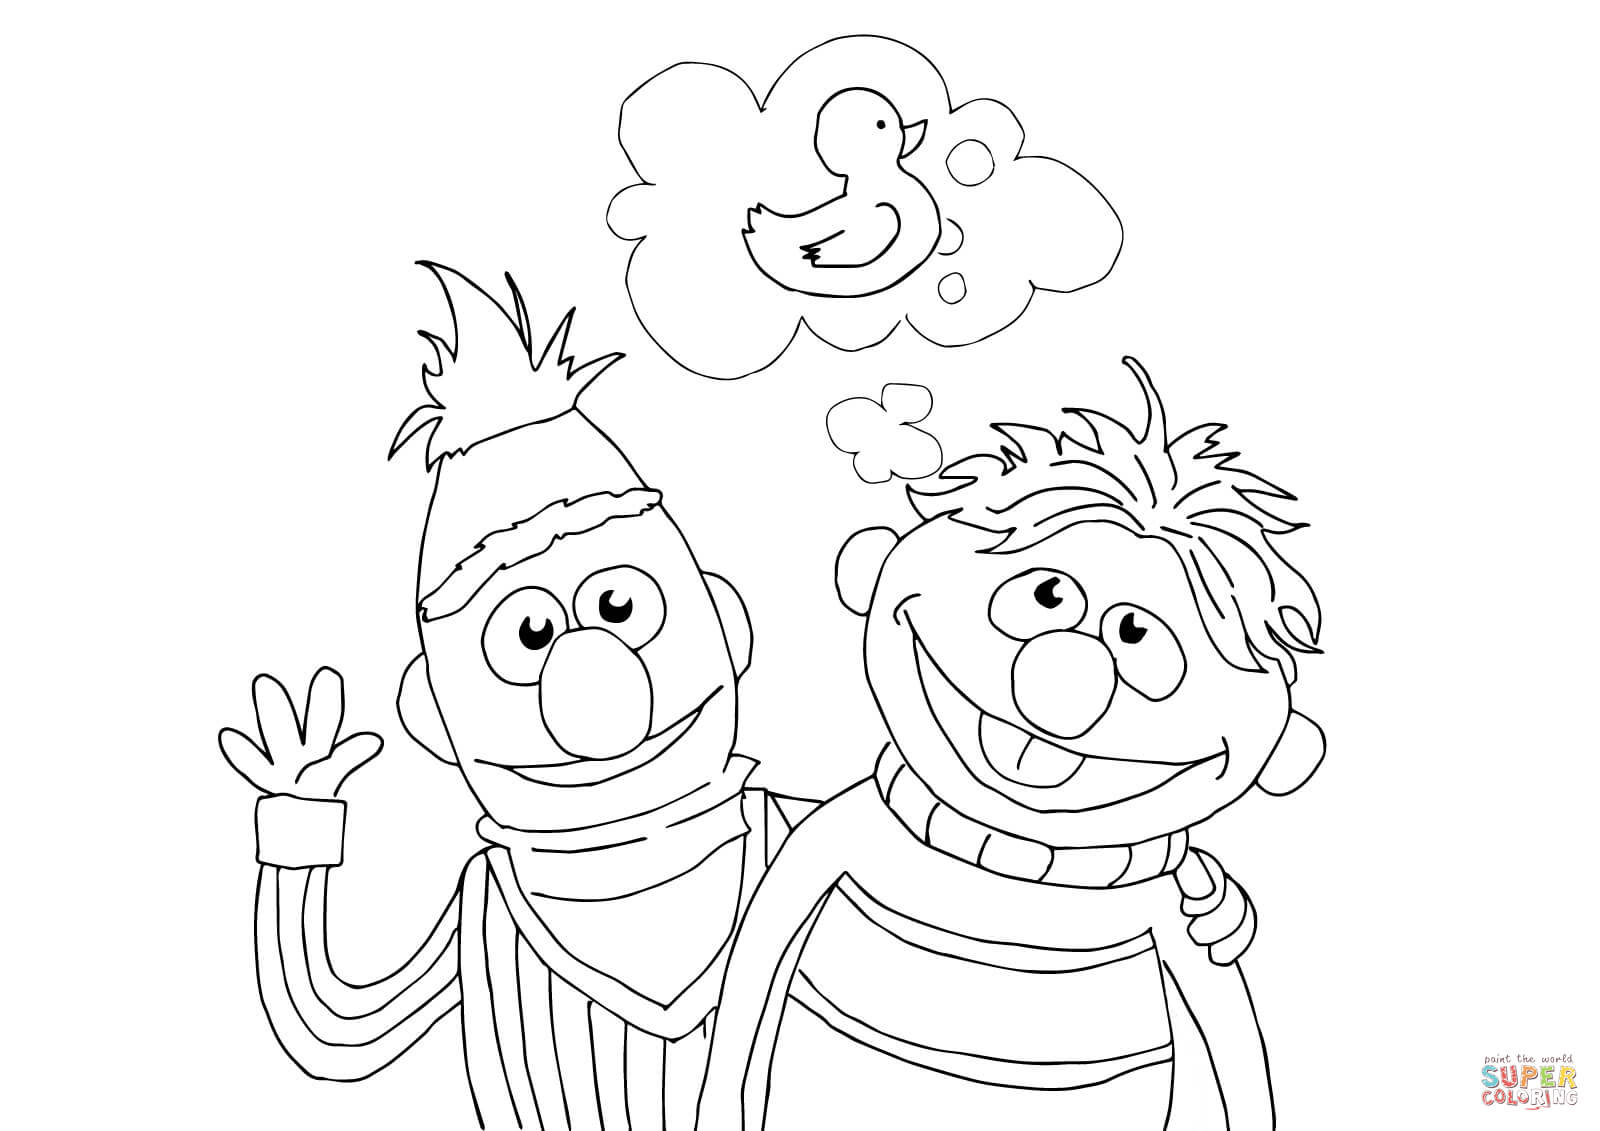 Bert, Ernie and Rubber Duckie coloring page | Free Printable ...